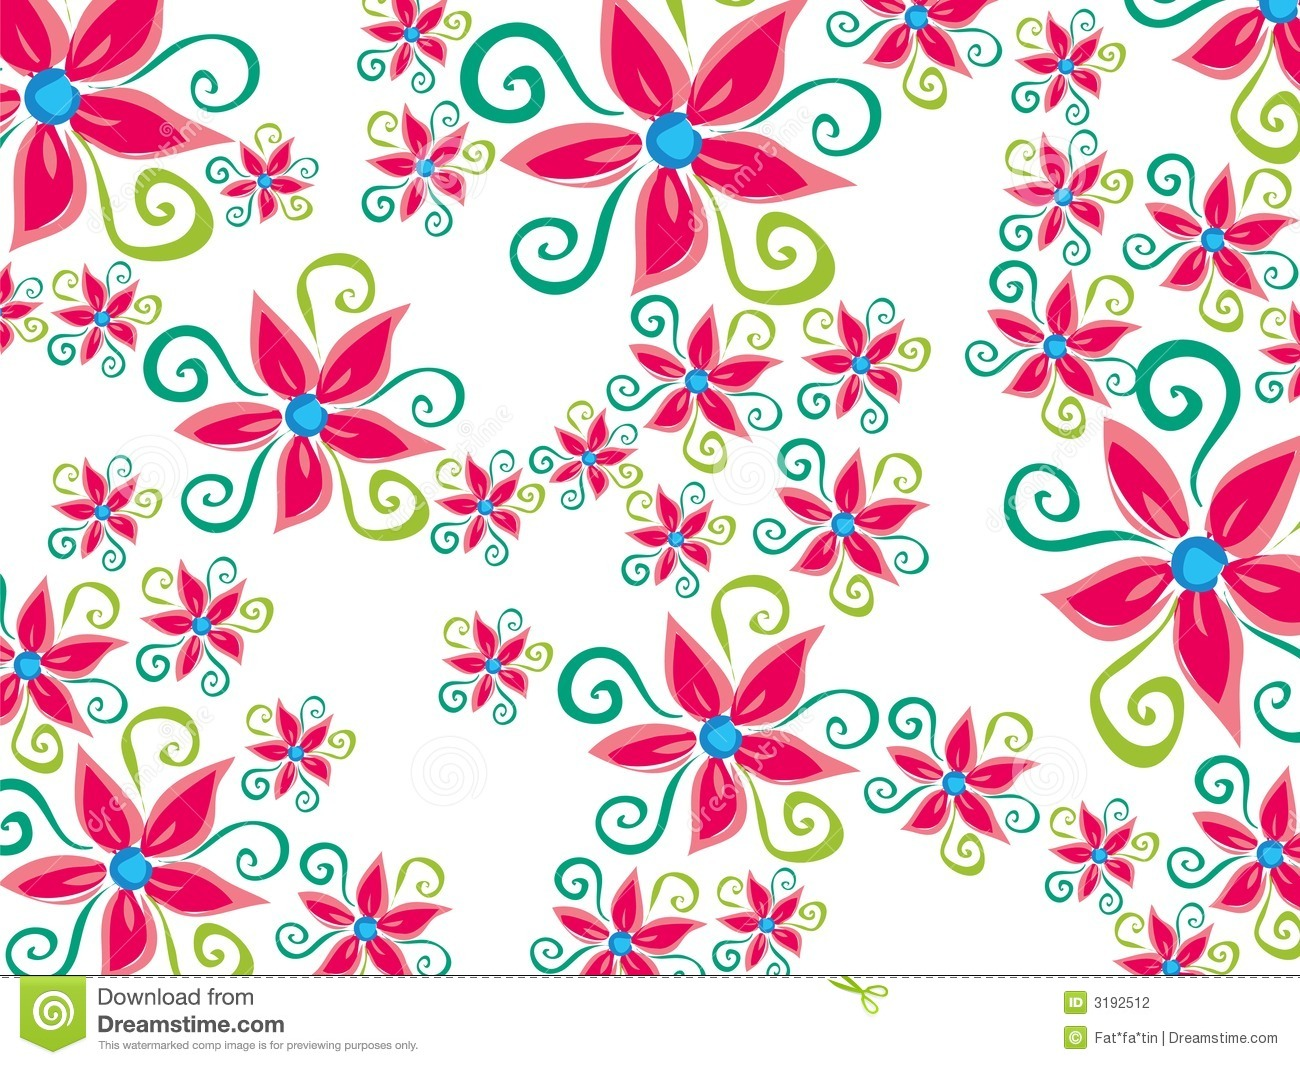 Funky groovy flower daisy stock vector. Illustration of ...